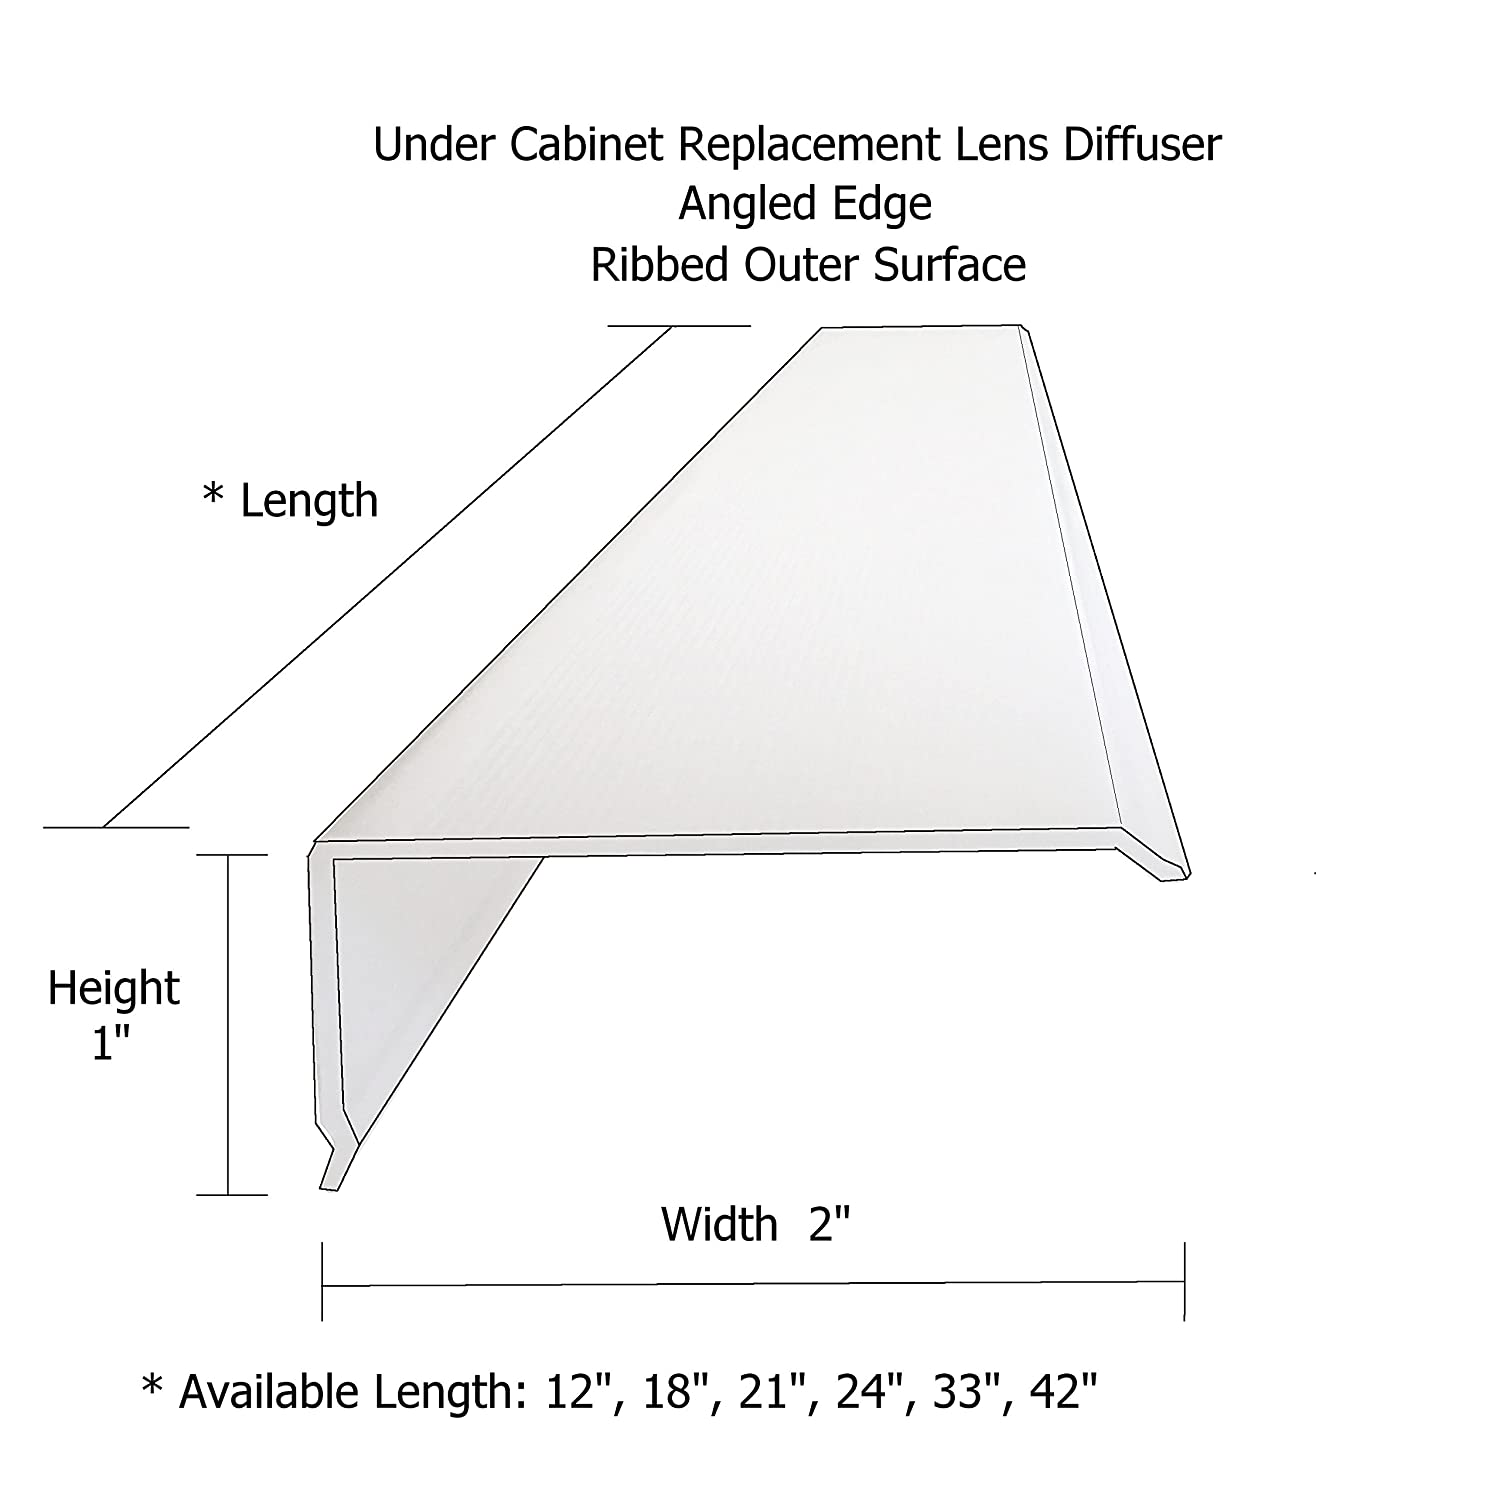 24 Lens Diffuser Under Cabinet Replacement Cover Narrow L-24 x W-2 x H-1 Angled Edge